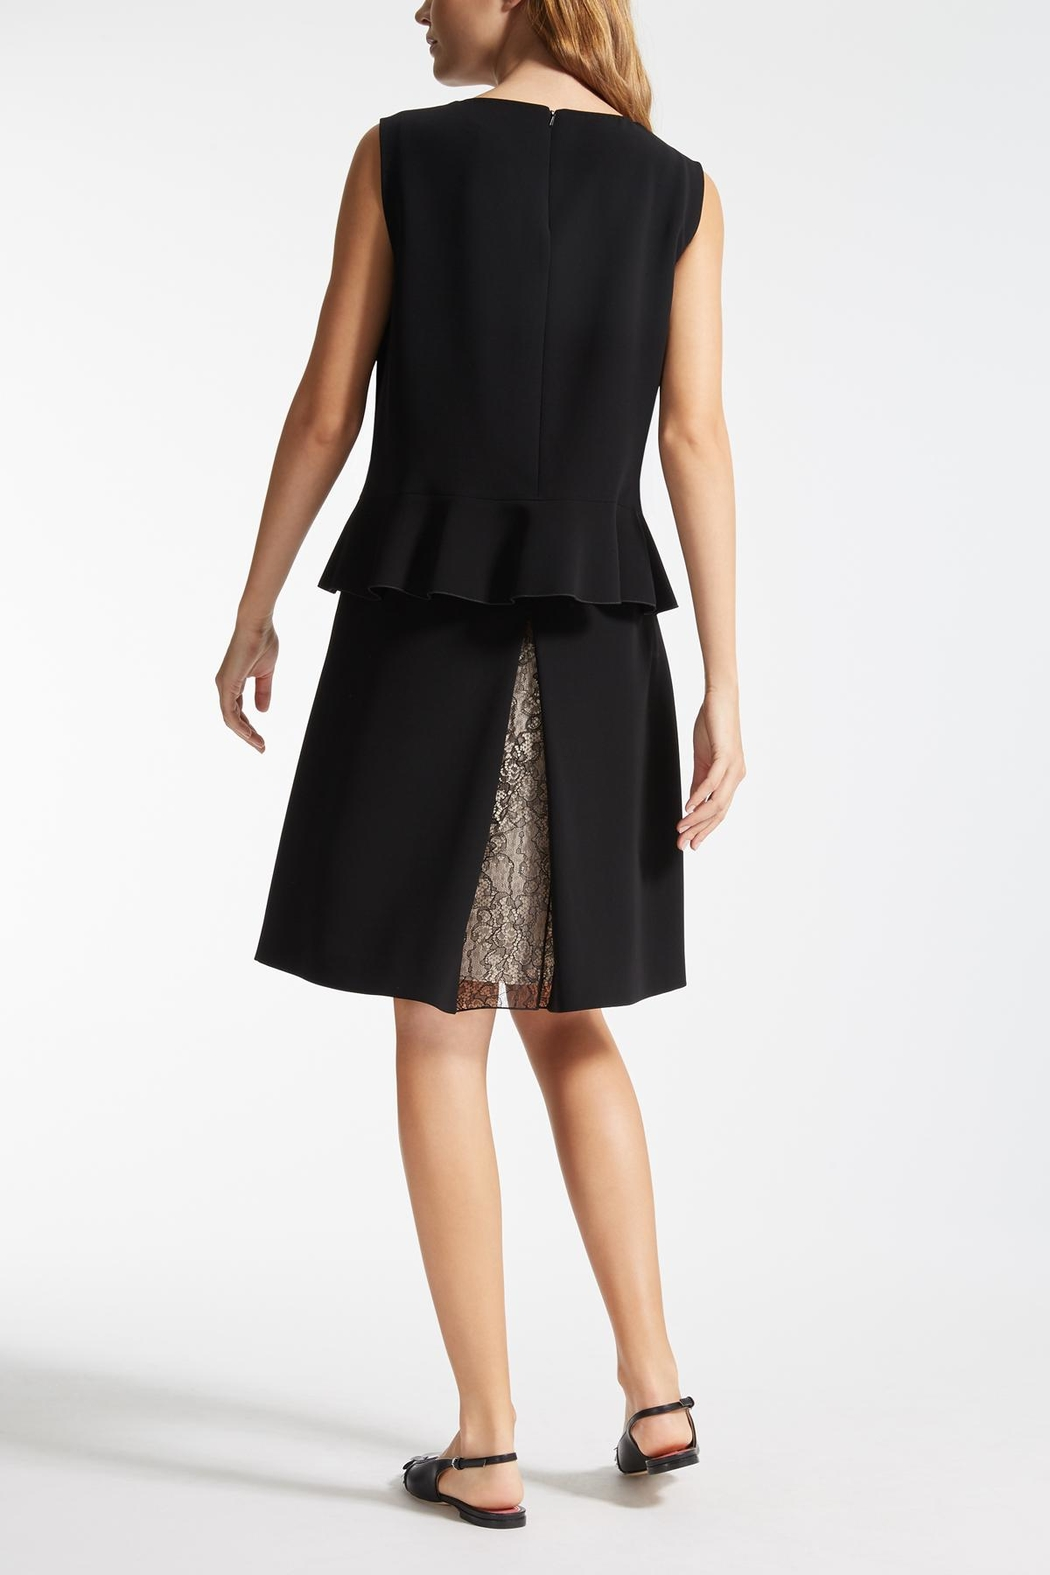 Max Mara Album Black Dress - Front Full Image